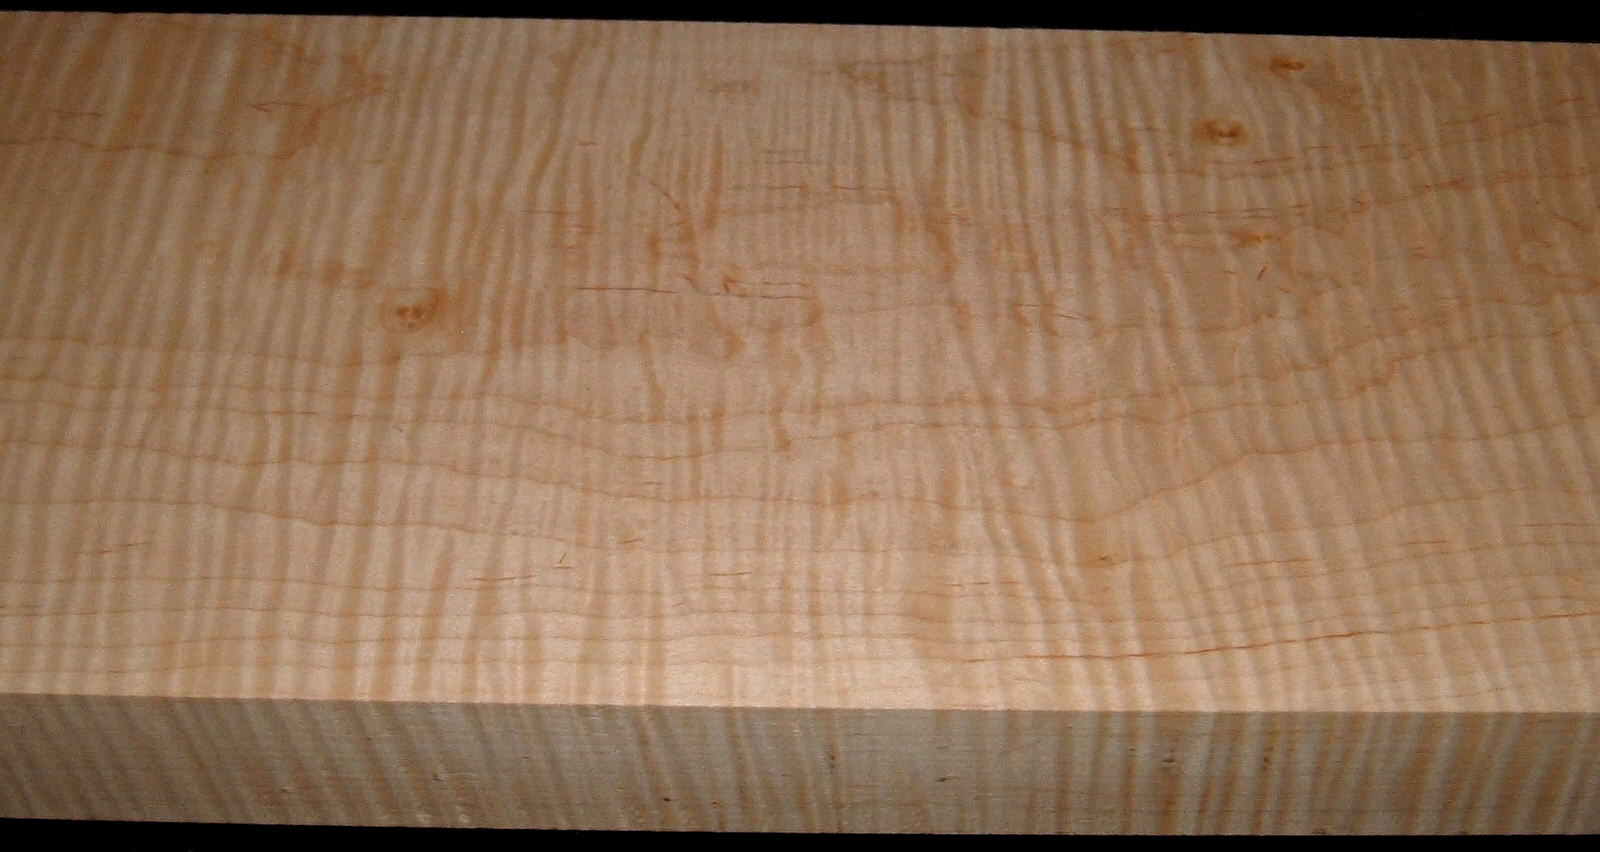 M1912-572J,L, 1-7/8x7-7/8x50, Curly Tiger Maple